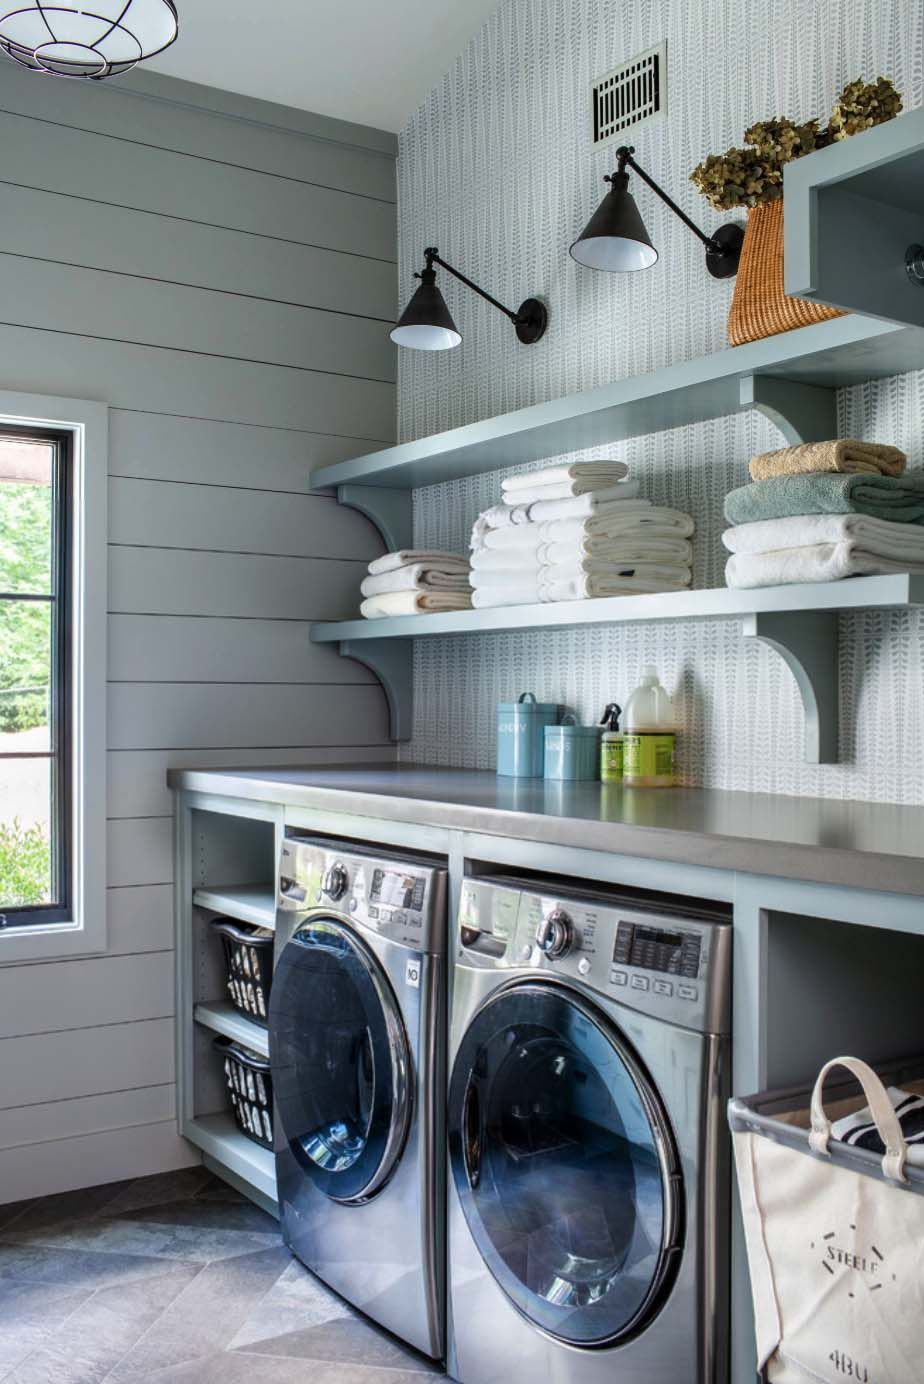 10 great modern farmhouse small laundry room ideas on extraordinary small laundry room design and decorating ideas modest laundry space id=30614